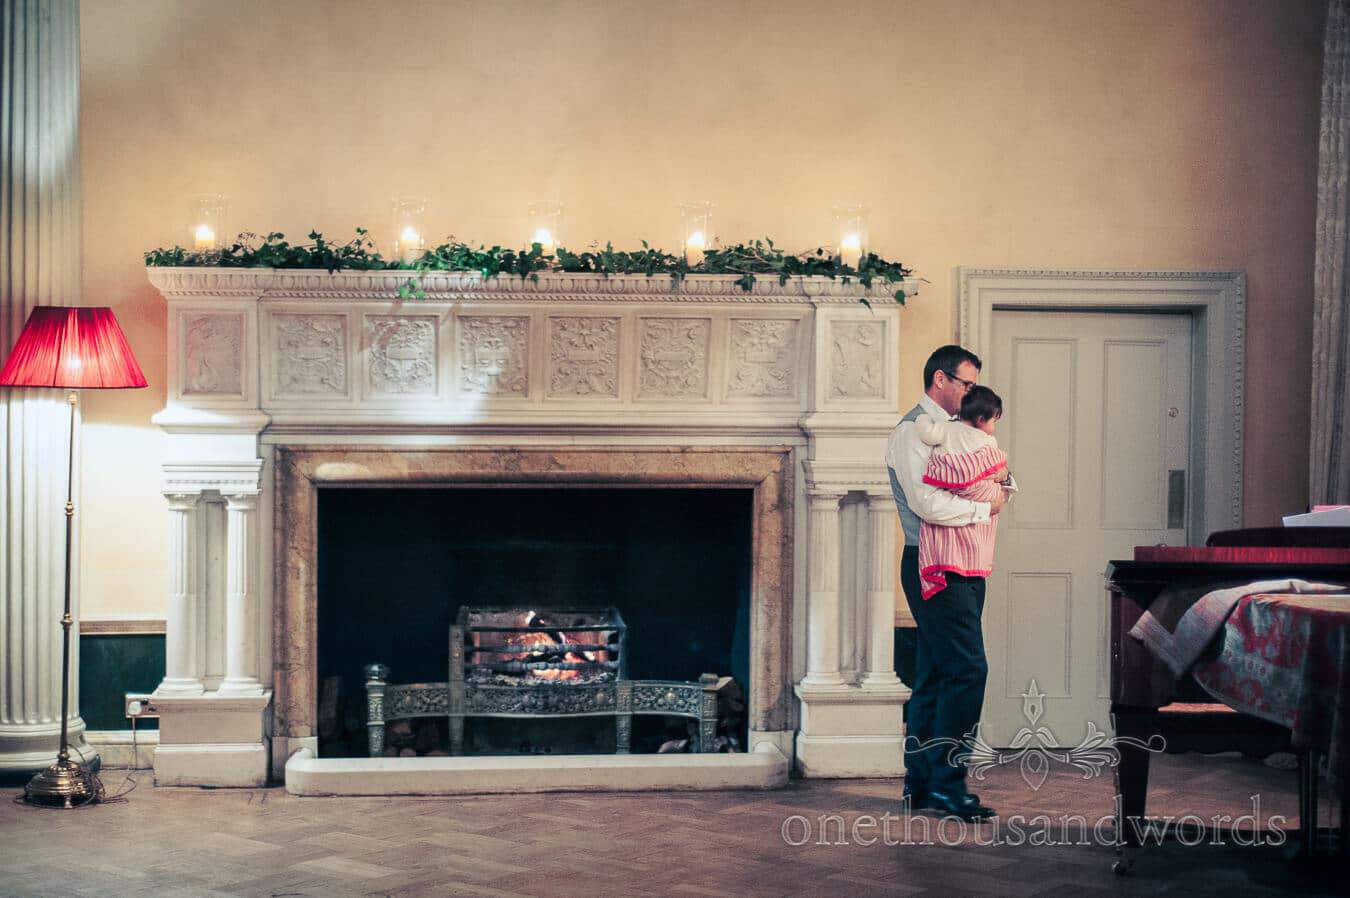 Fireplace and wedding guest at Hampton Court House Wedding Venue